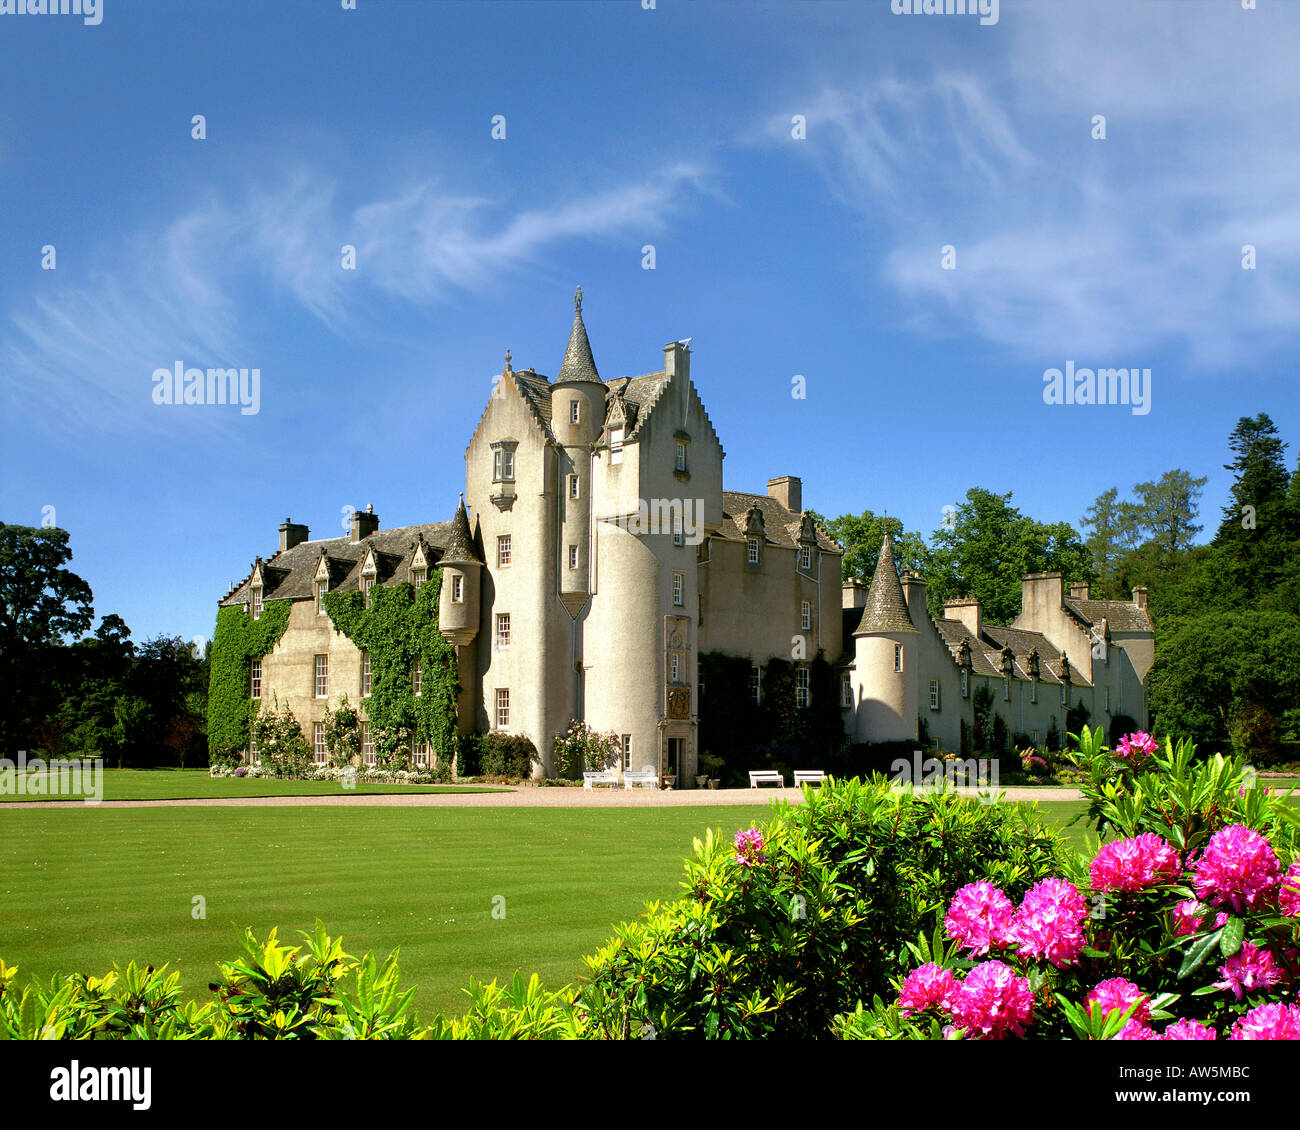 GB - SCOTLAND:  Ballindalloch Castle - Stock Image